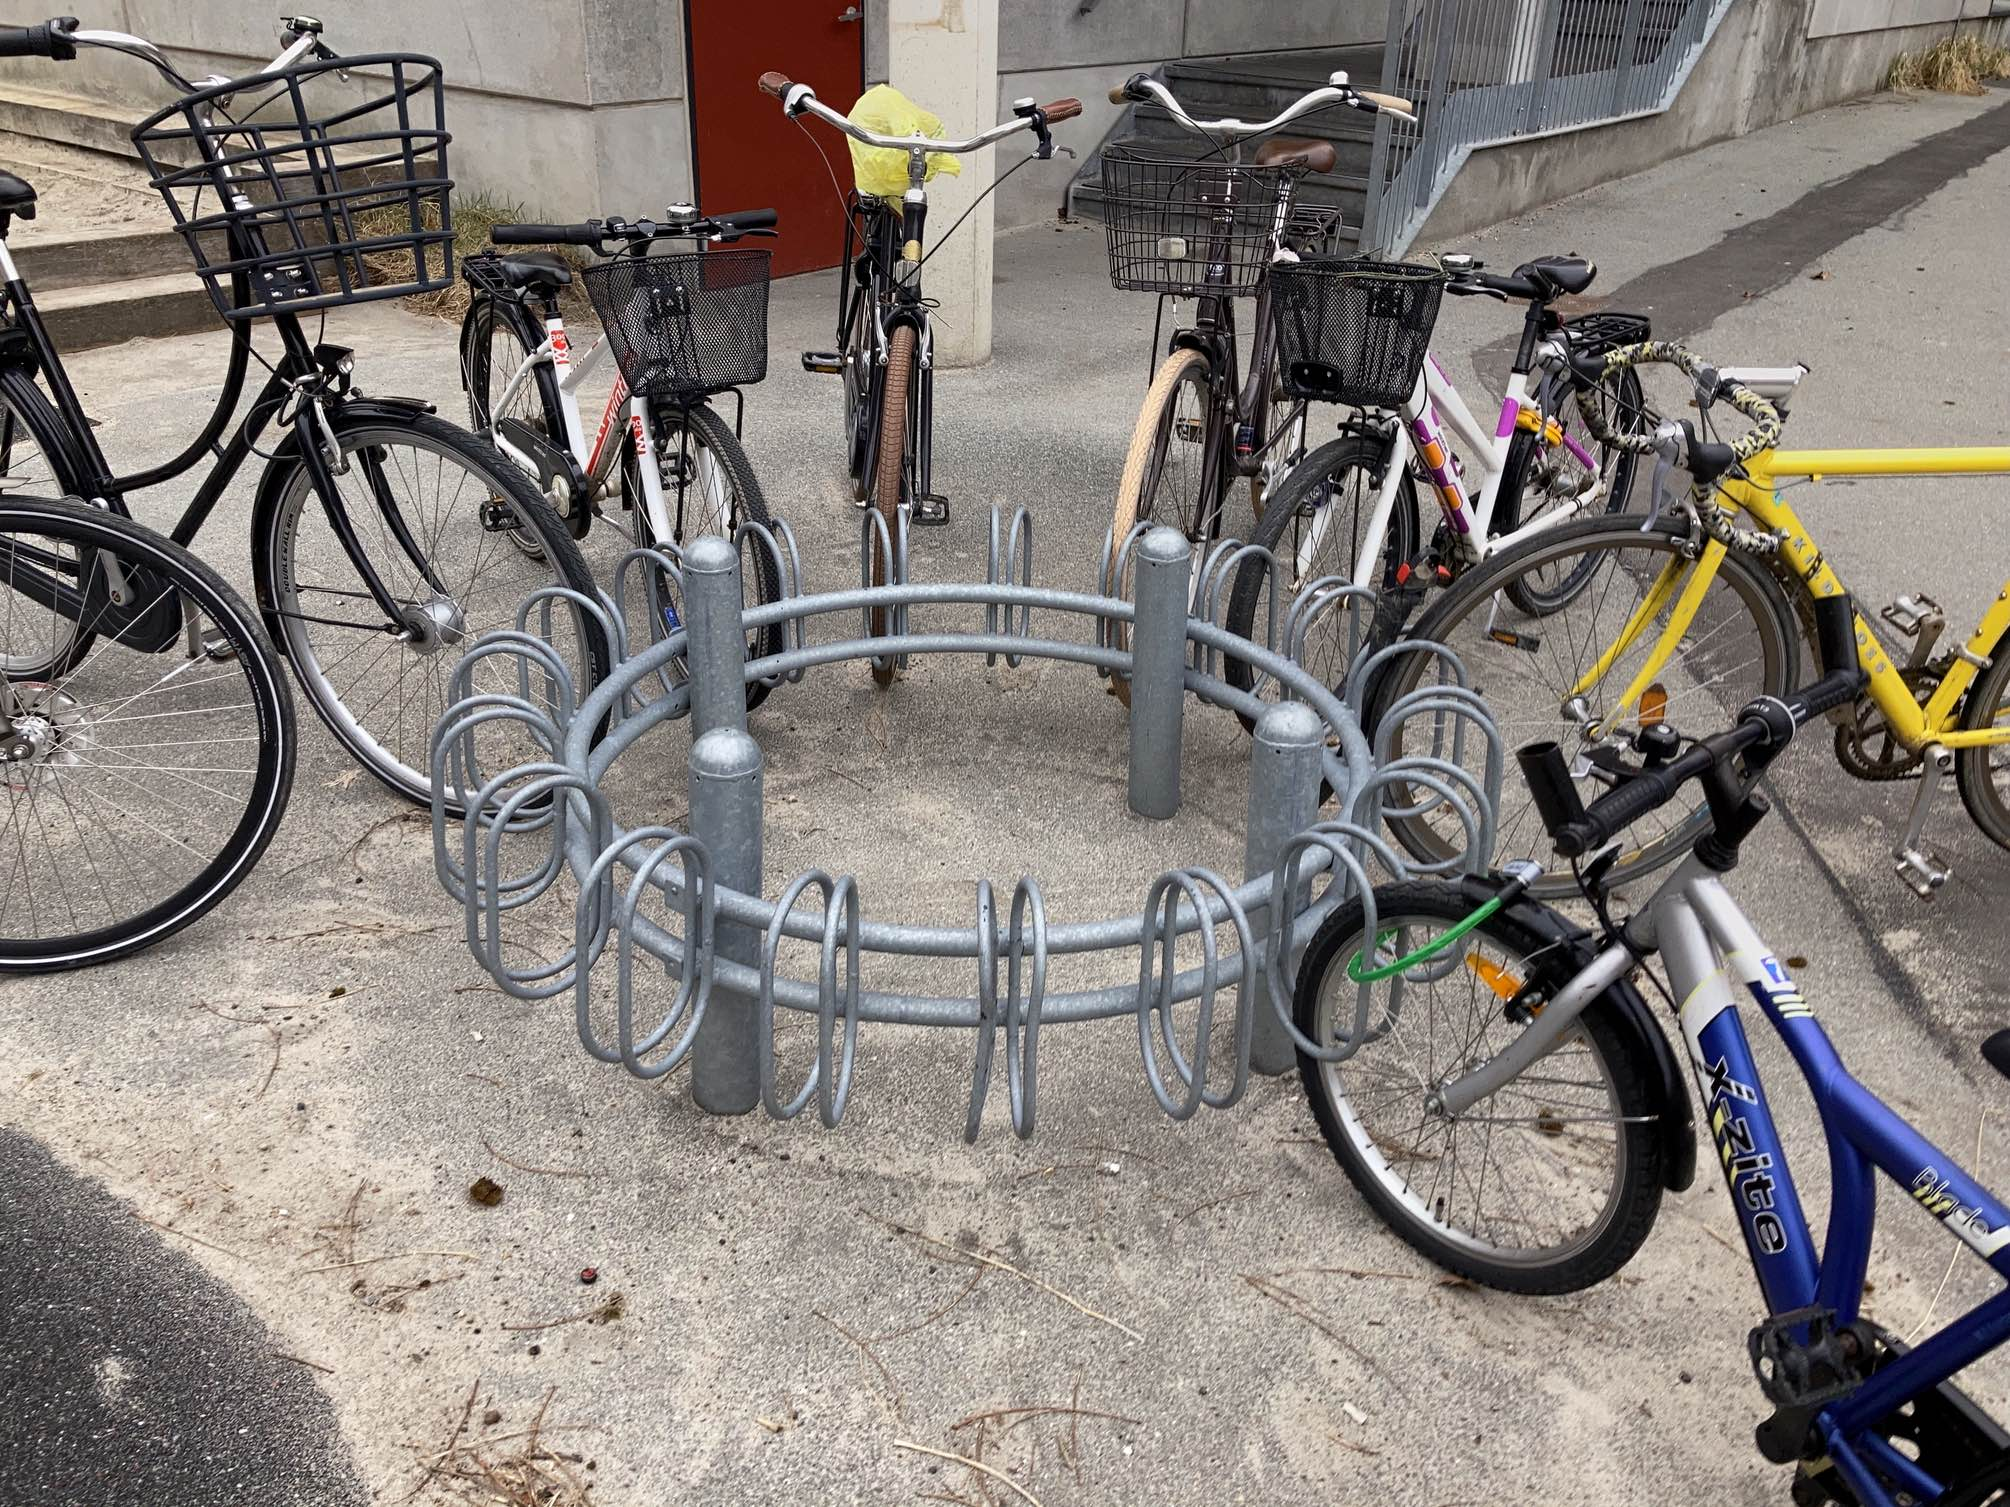 I didn't get to go anywhere fancy today – was planning to make a little trip later on in the day, but then, while waiting for my daughter at the playground, suddenly saw these bikes that I see everyday, in a different way. A meeting of different types – all  kinds of circles. From on top of the trampoline.